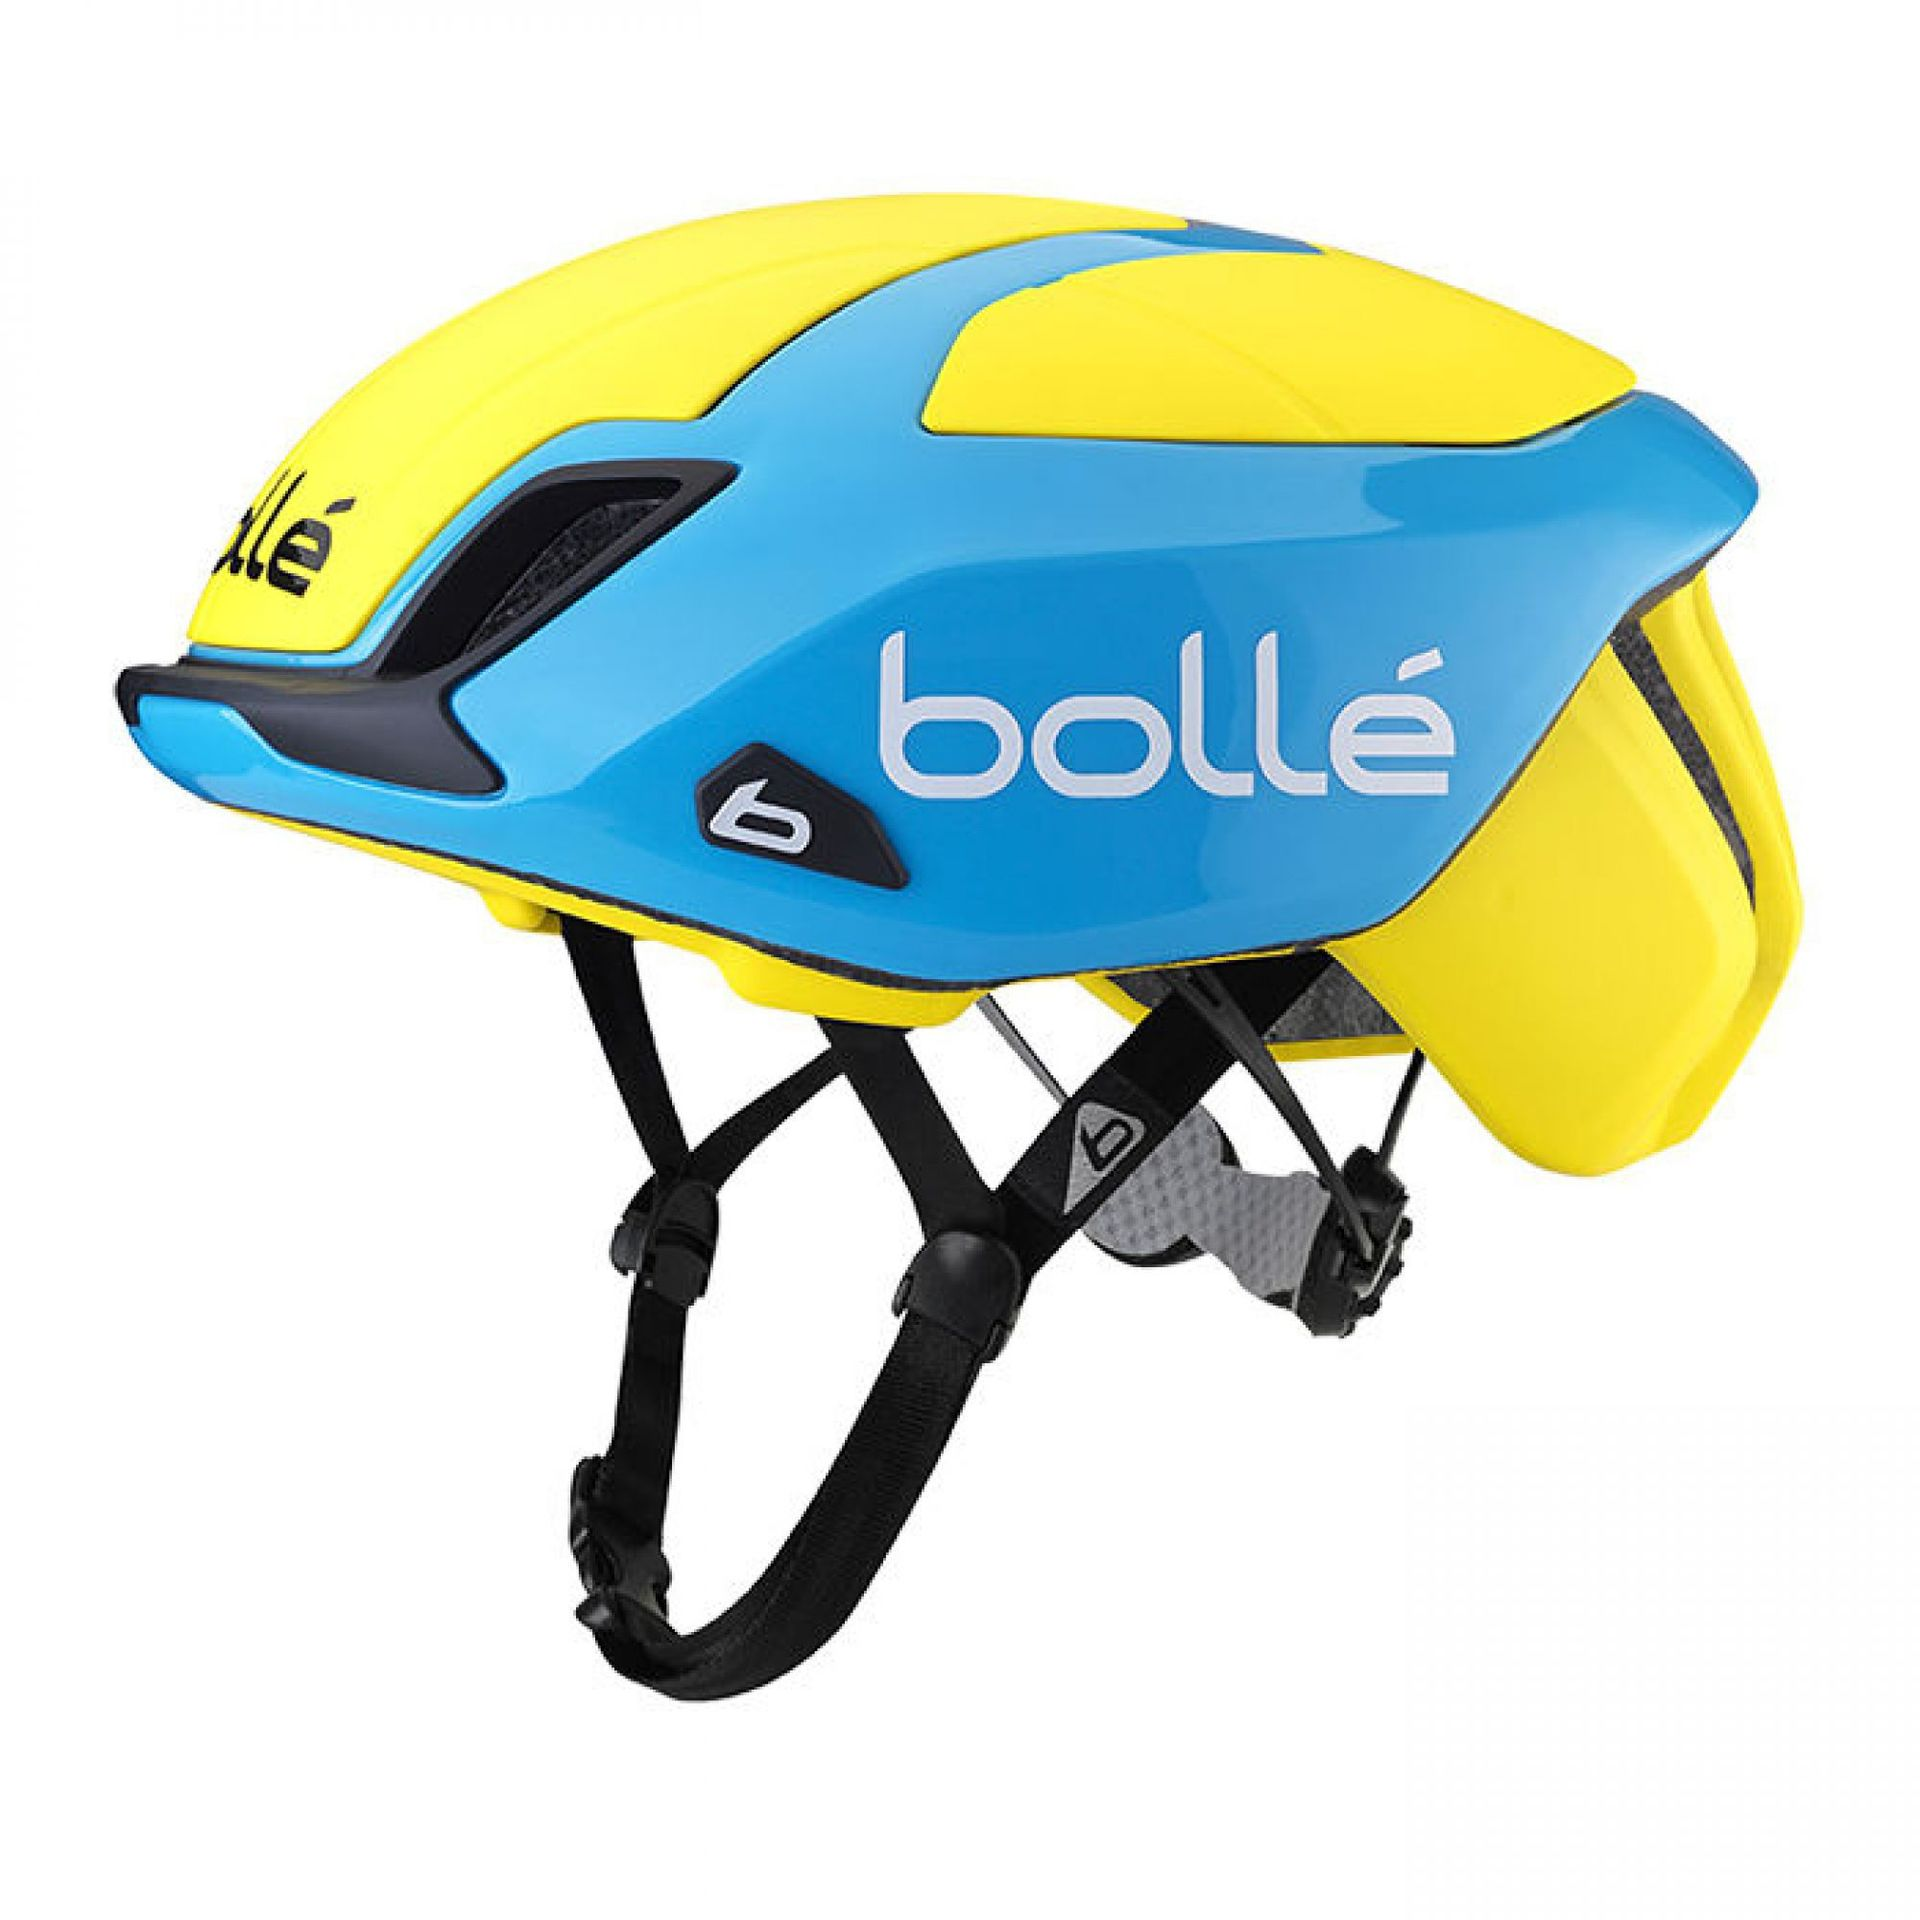 KASK ROWEROWY BOLLE THE ONE ROAD PREMIUM YELLOW BLUE